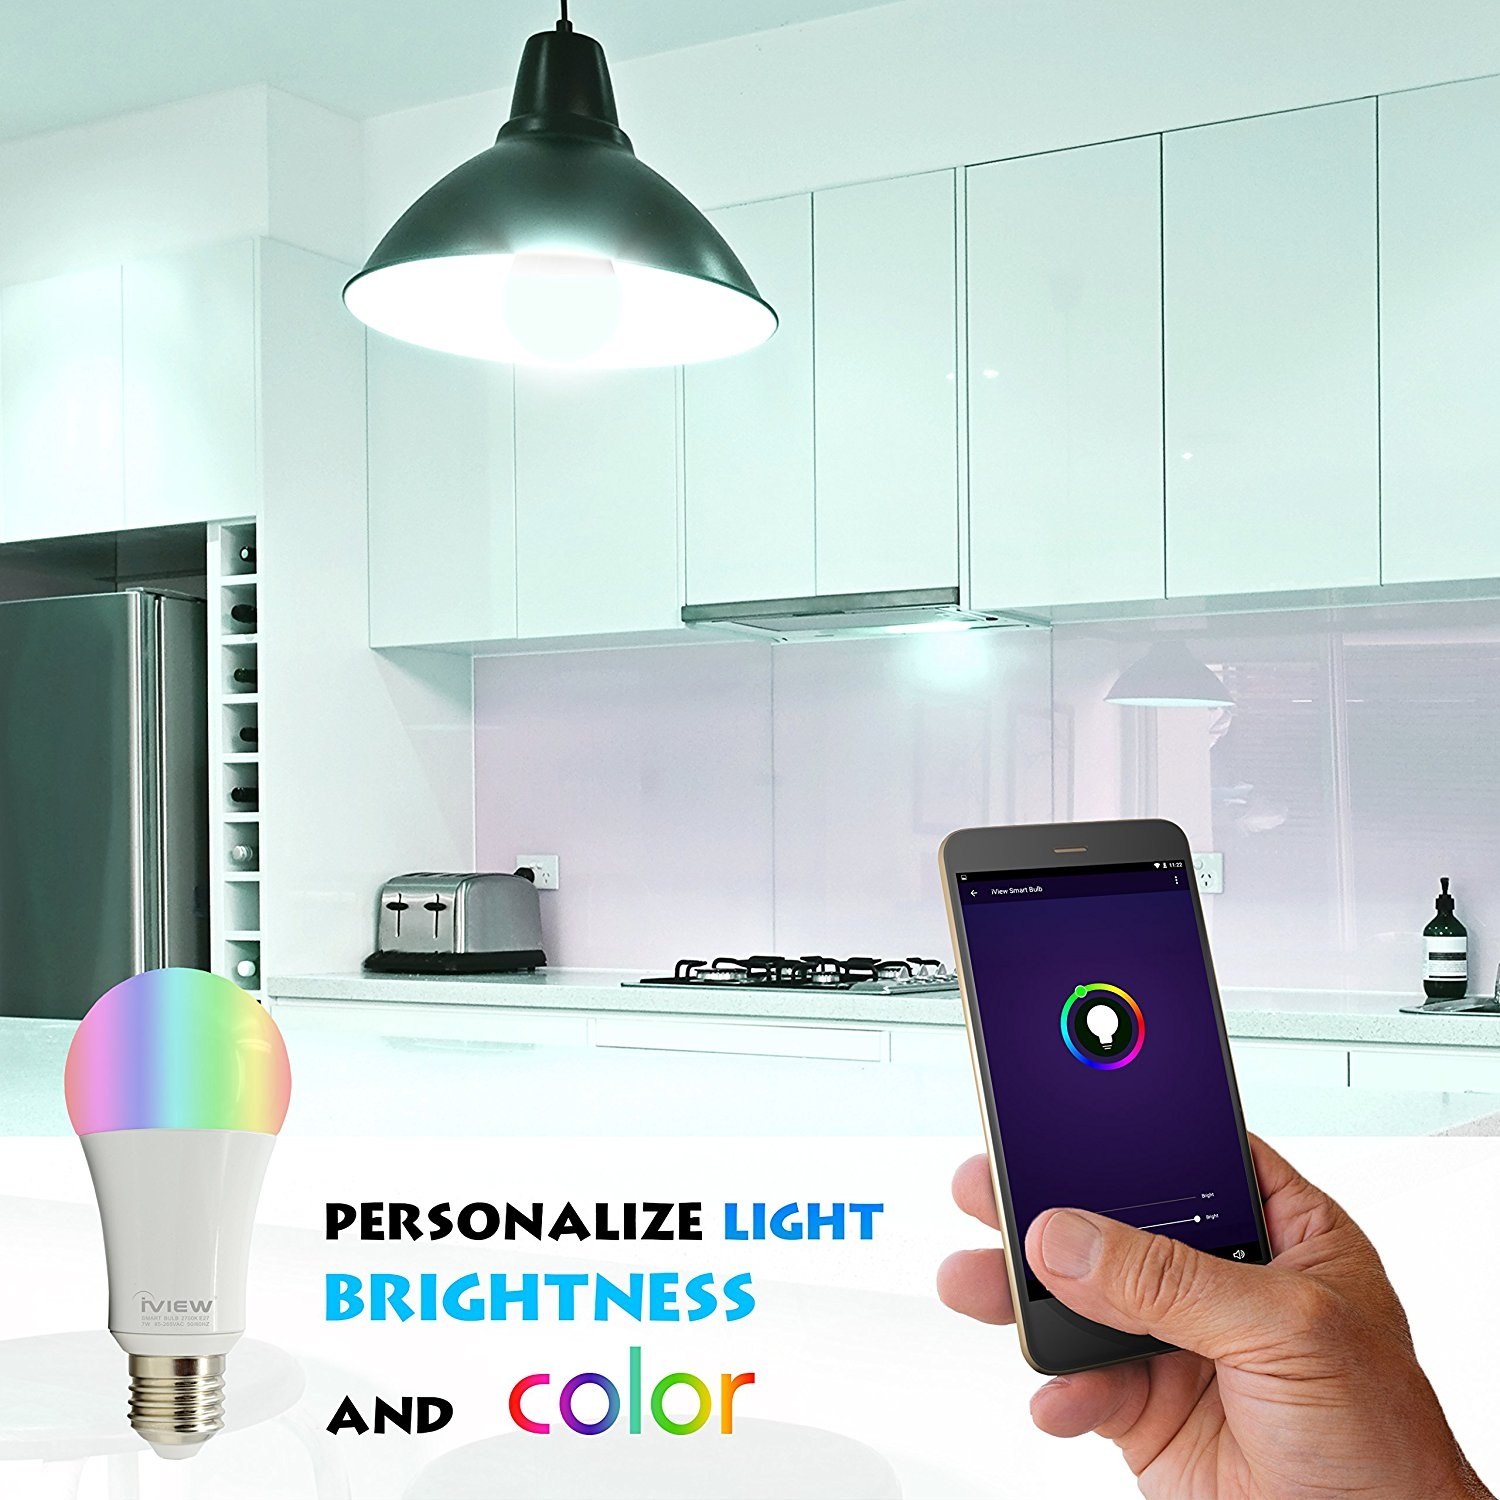 DSHA -ISB600 Smart WiFi LED Bulb, Multi-Color, Dimmable, Repeater Free, Free APP Remote Control, Amazon Alexa and Google Assis